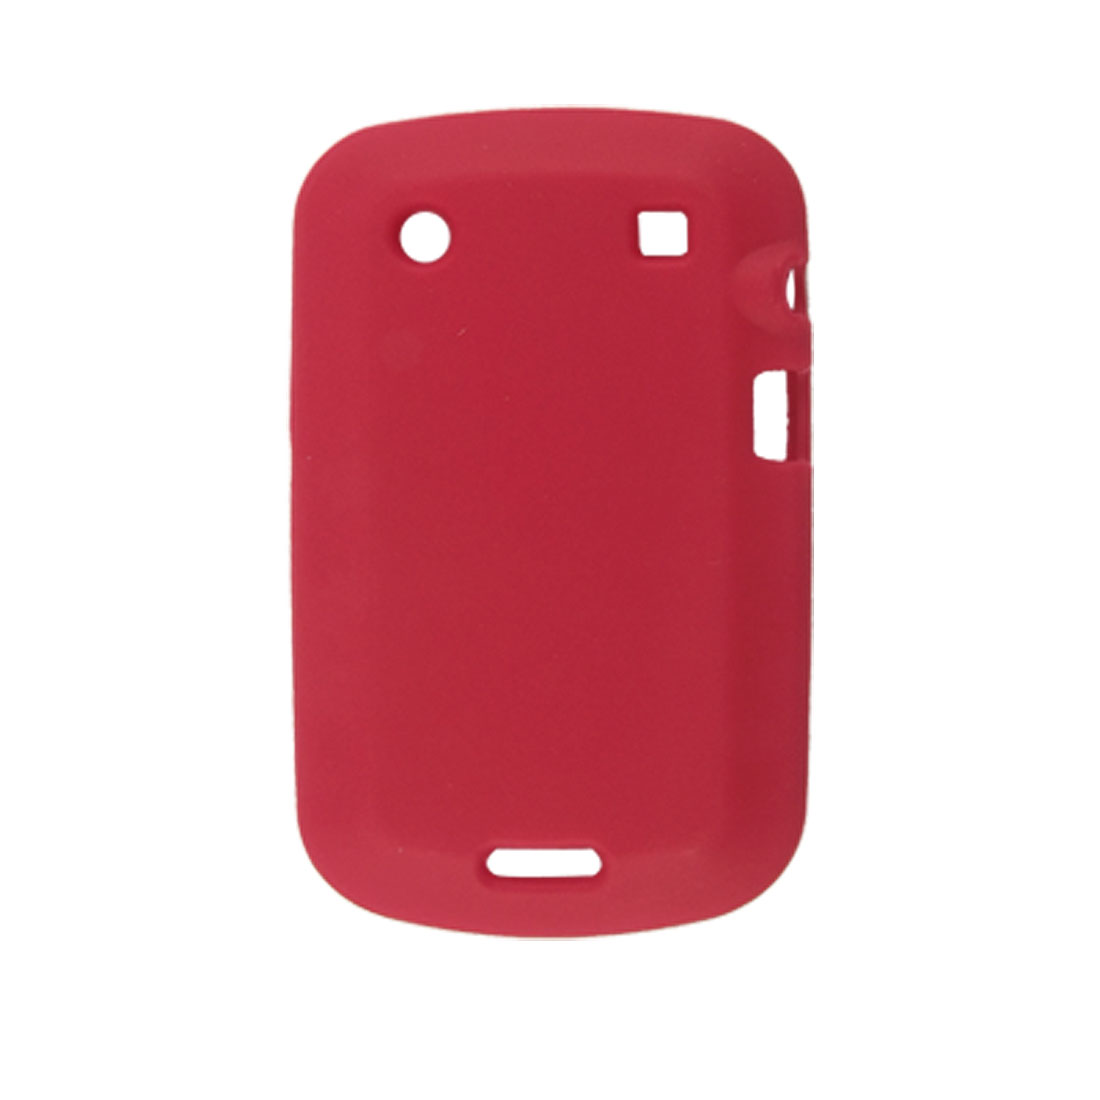 Red Silicone Skin Cover Case for Blackberry 9900 9930